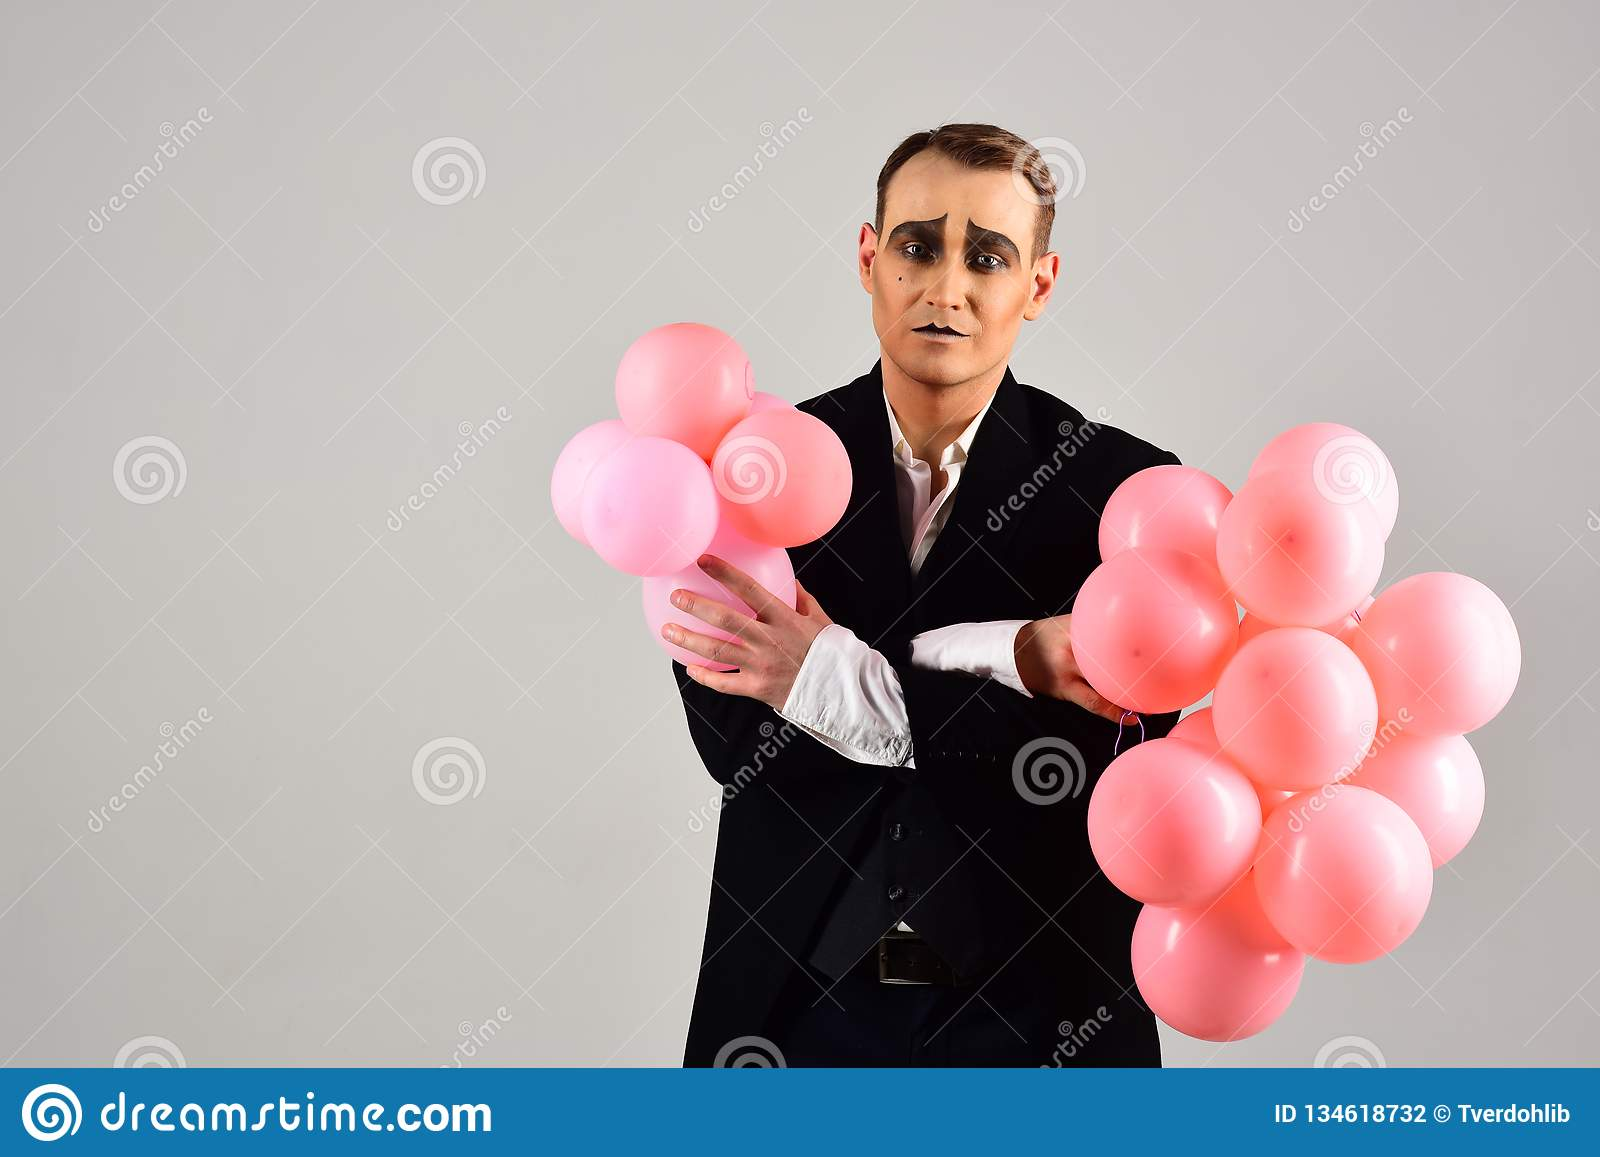 Special day to celebrate. Mime man with party balloons. Balloon artist. Man with mime makeup on birthday party. Happy